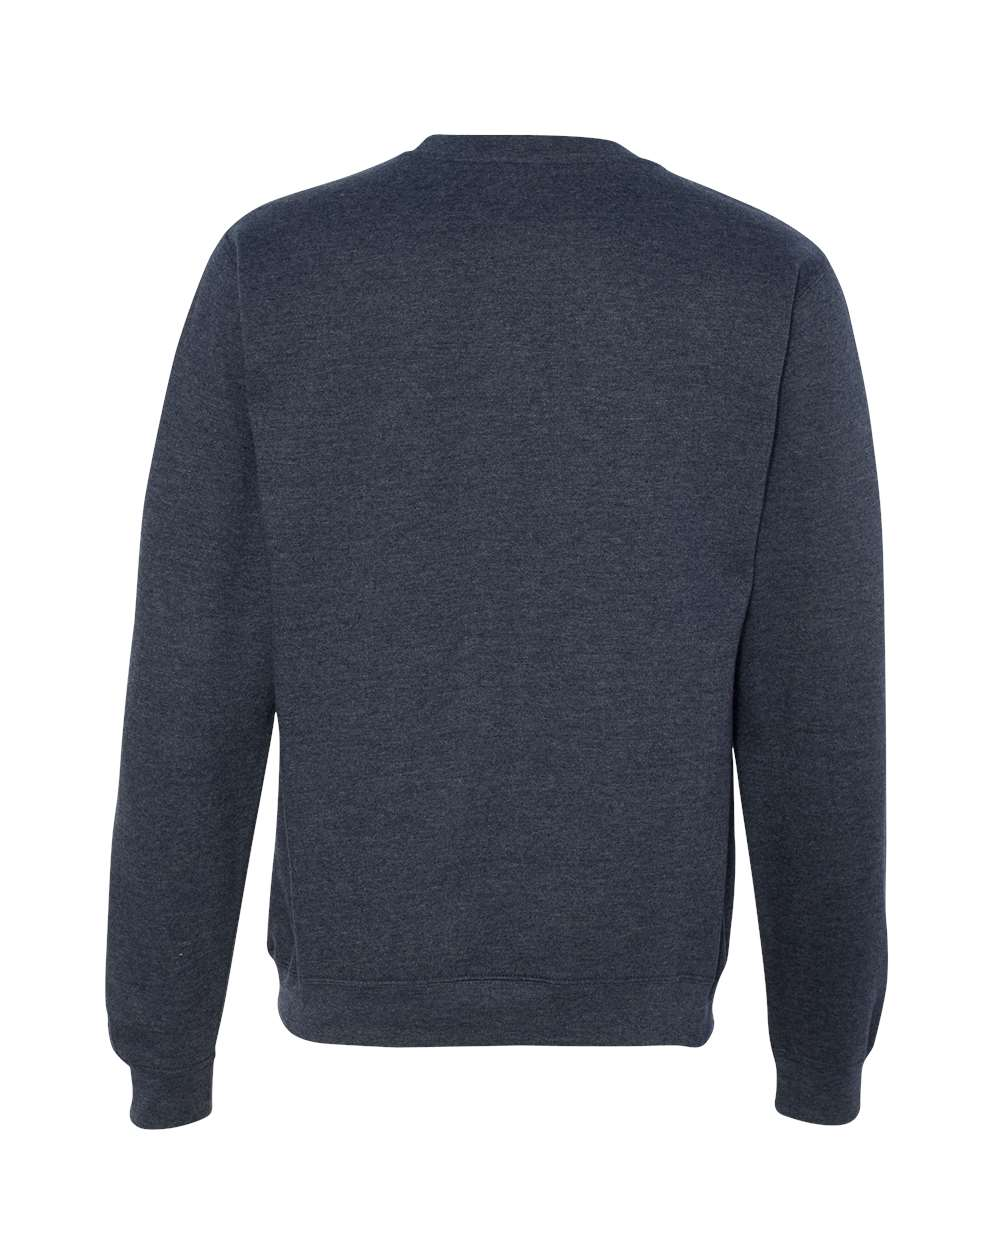 Independent-Trading-Co-Midweight-Crewneck-Sweatshirt-SS3000-up-to-3XL miniature 19